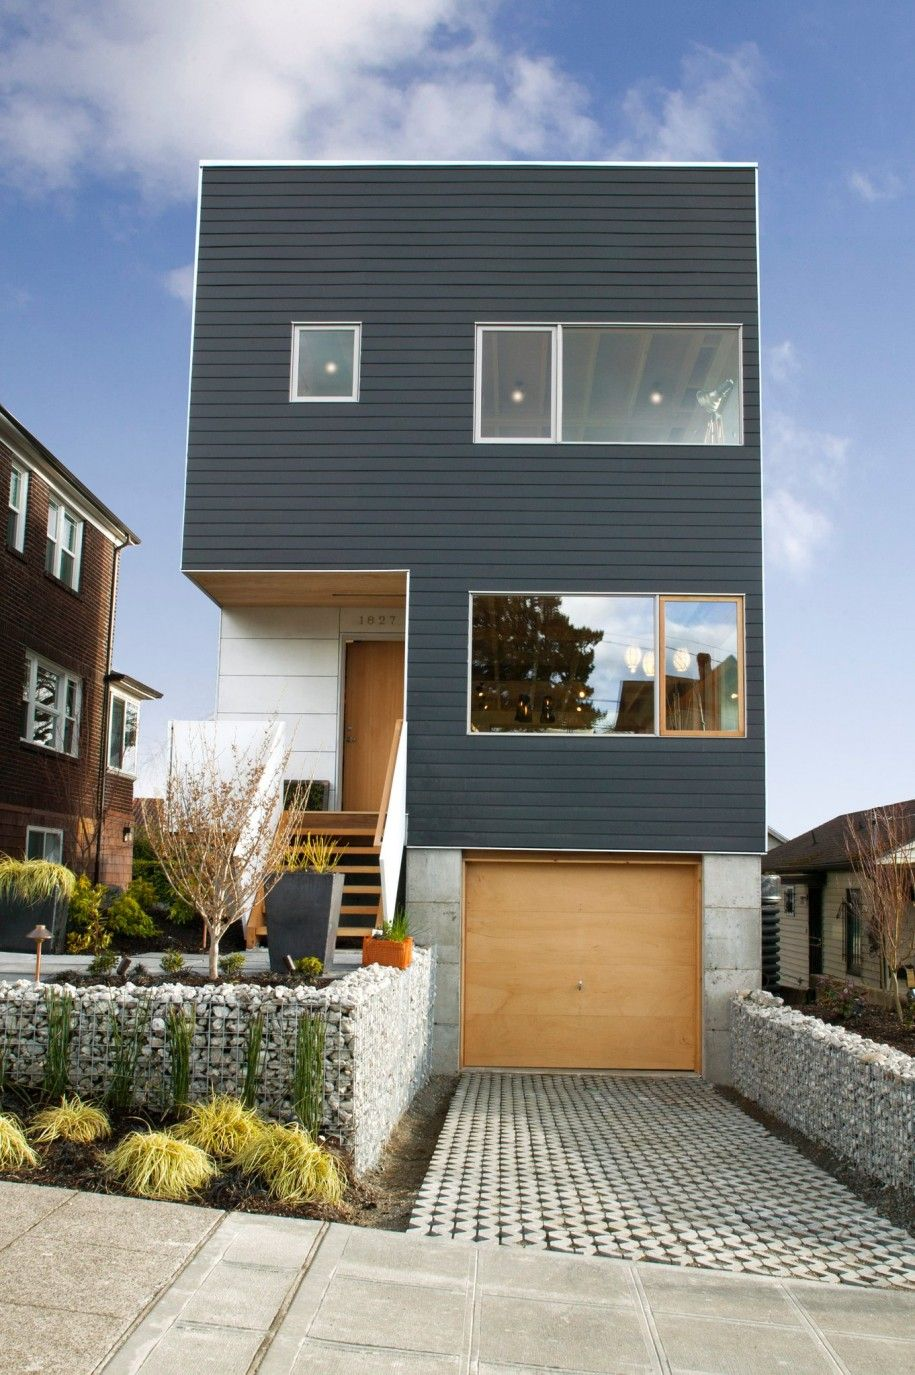 Charming The Best Styles Of House Architecture : Awesome Three Level Modern Cube  House Architecture Design With Small Front Garden And Basement Garag.